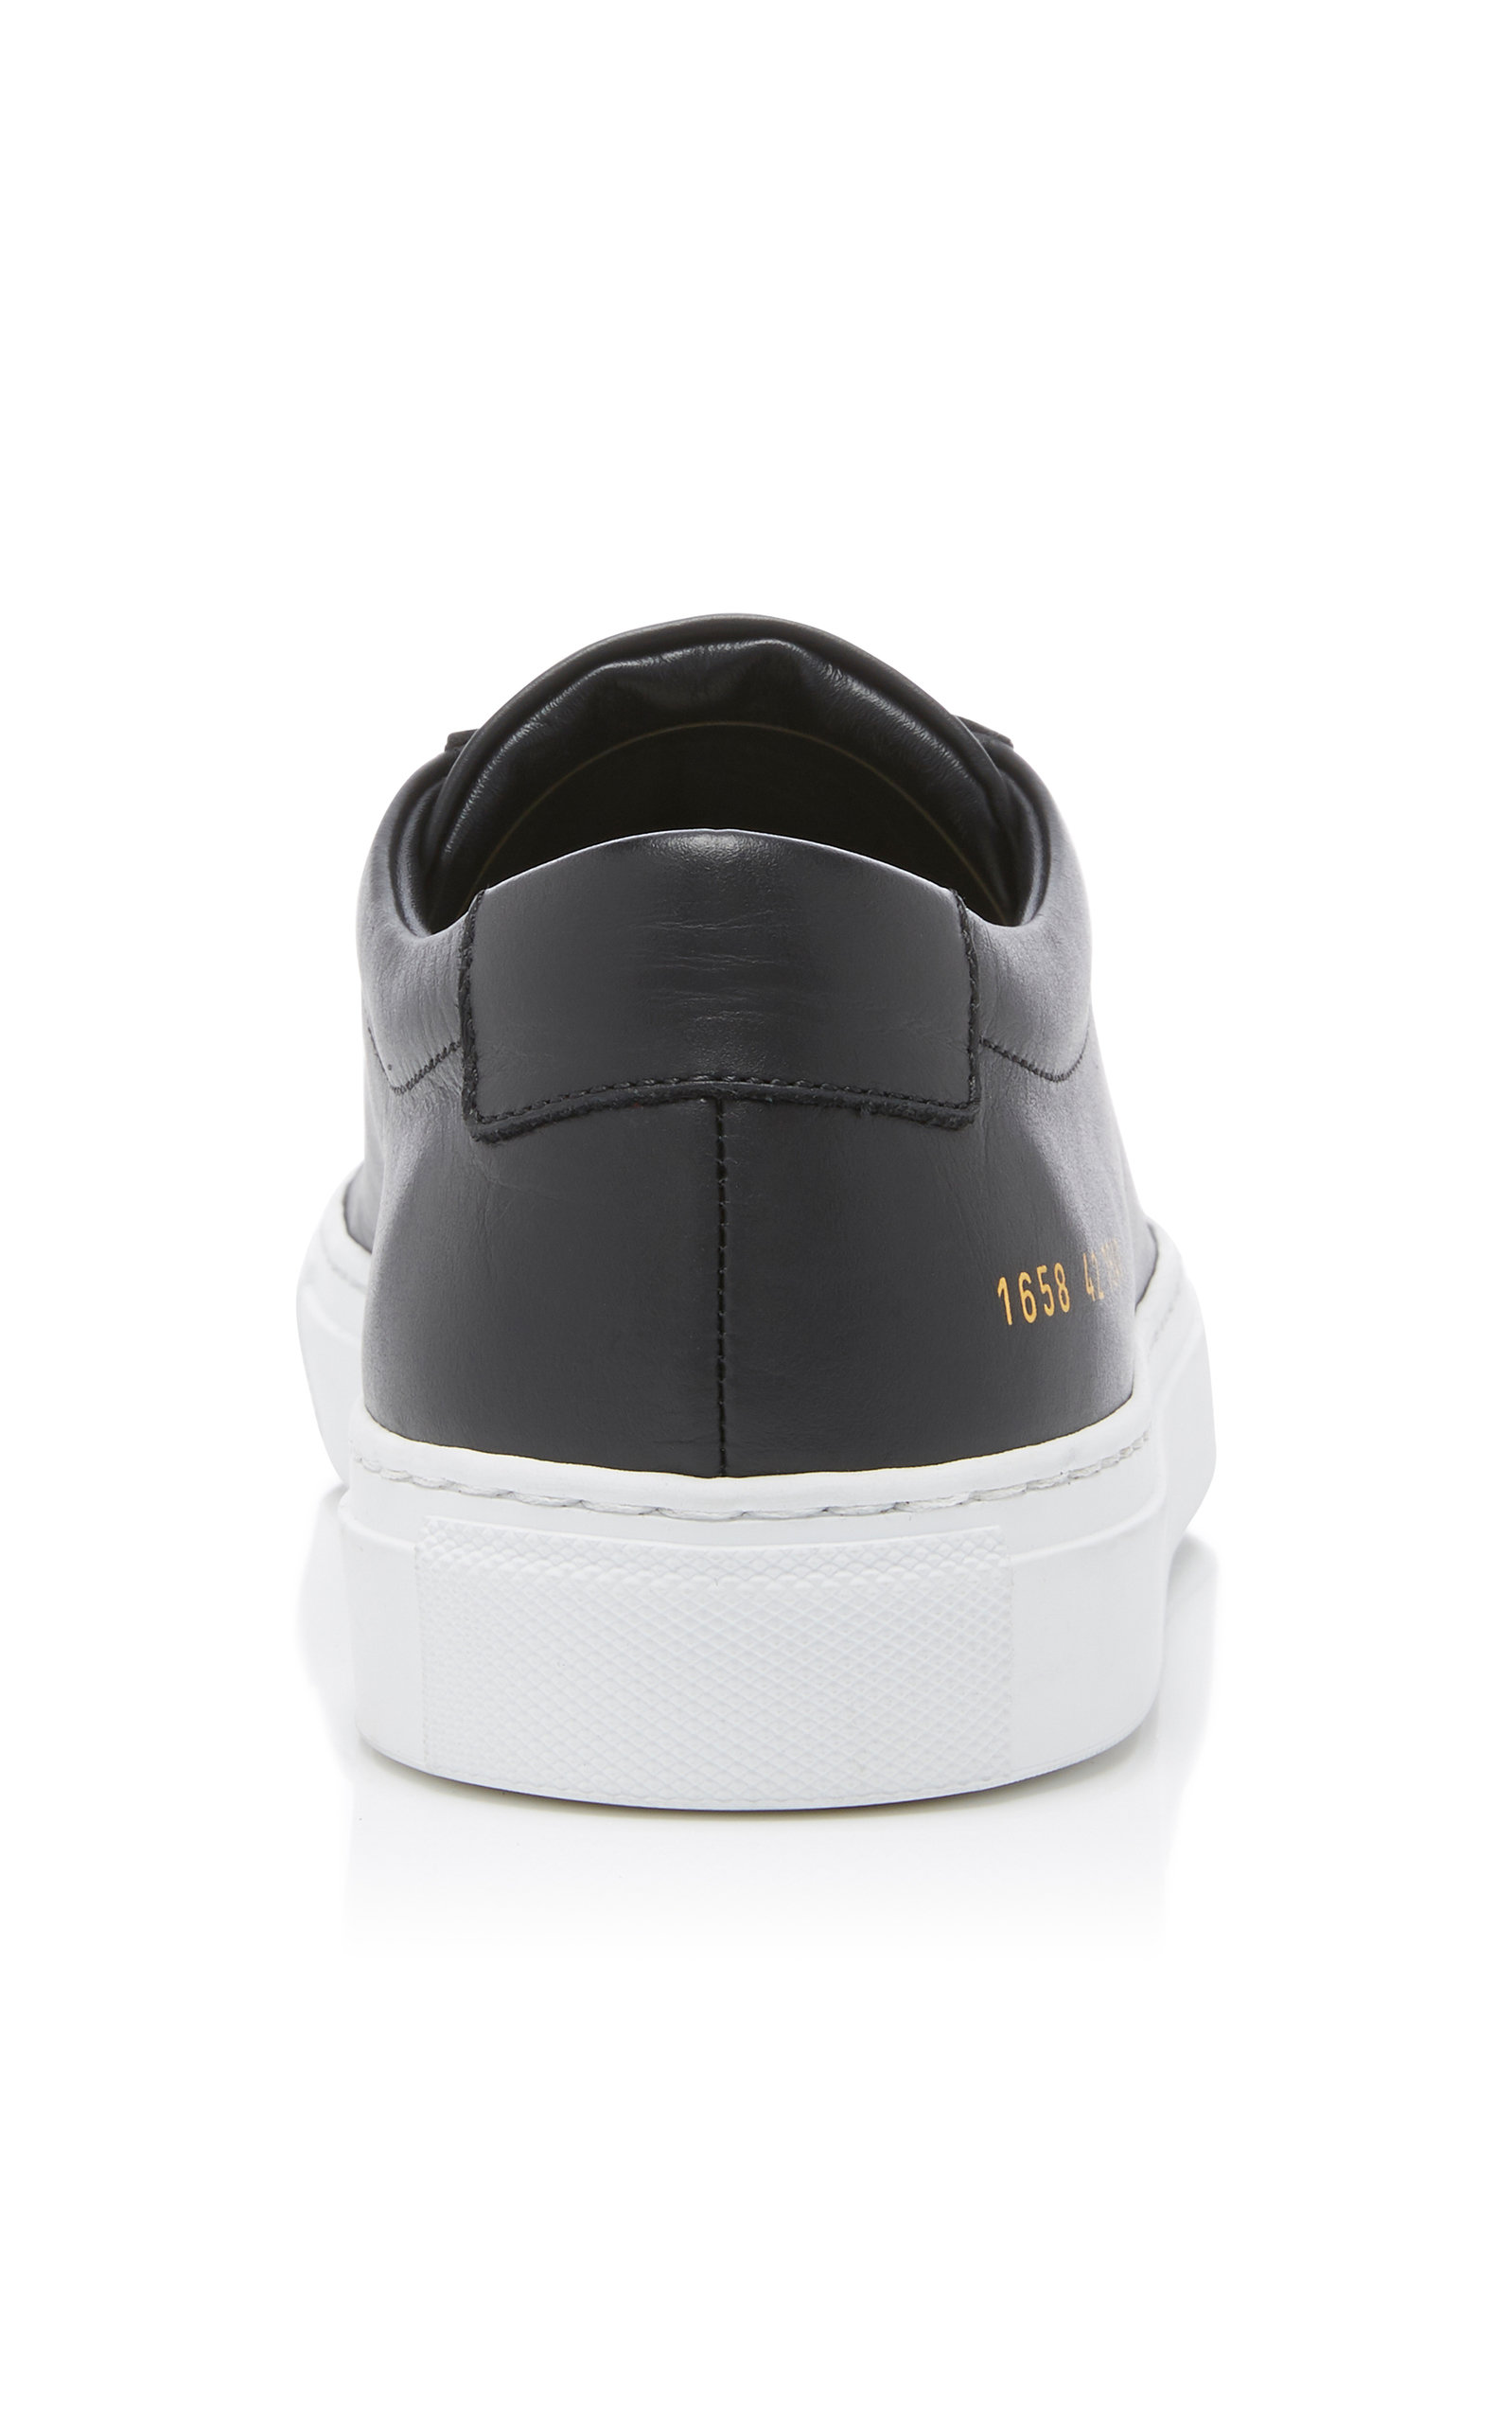 Leather Top Two Low Sneakers Moda Achilles Tone Common By Operandi PwBCqSExIE